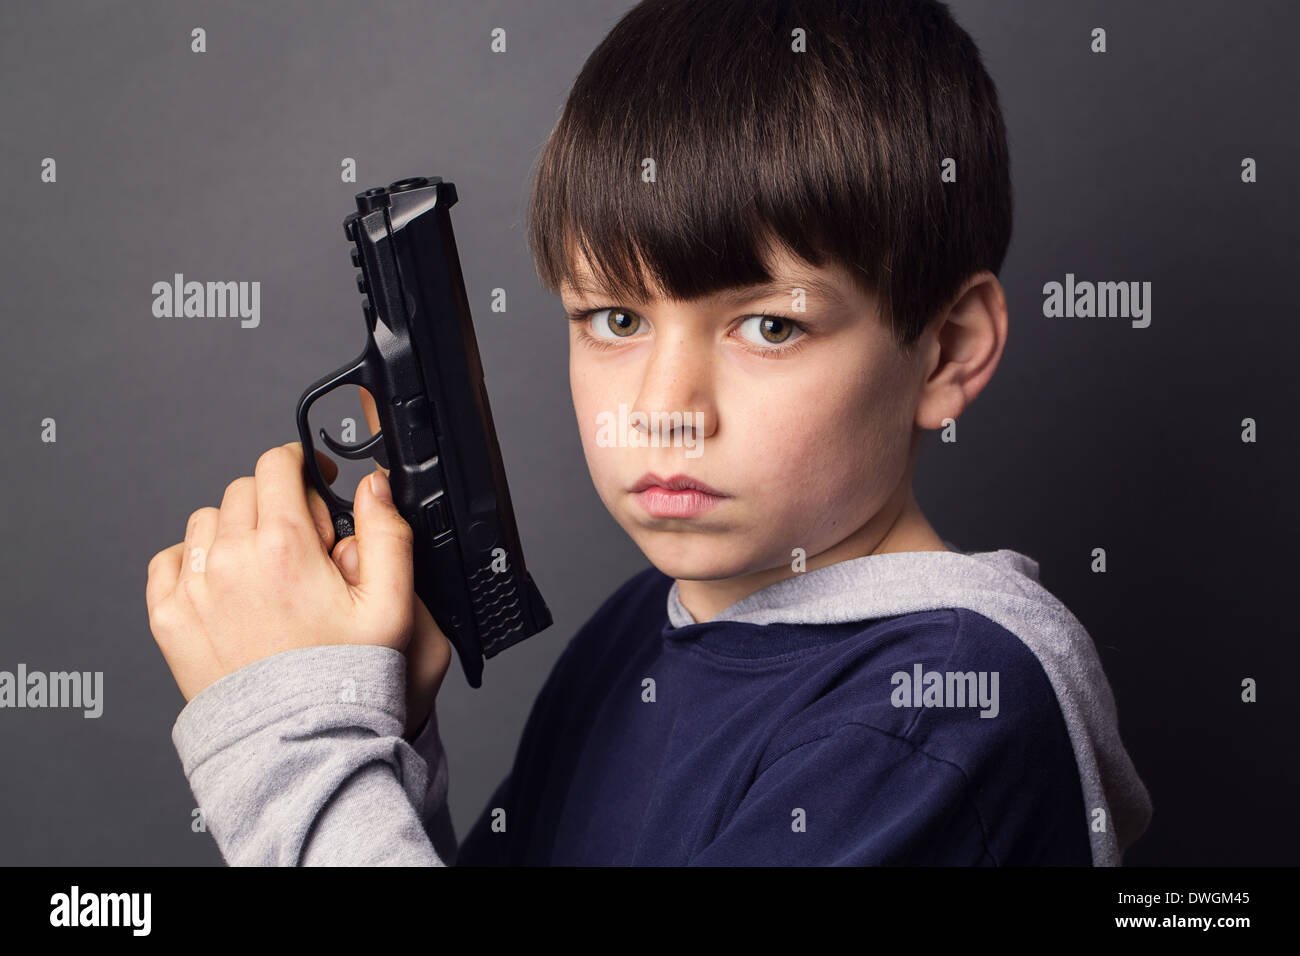 A young boy holds/points a handgun - Stock Image